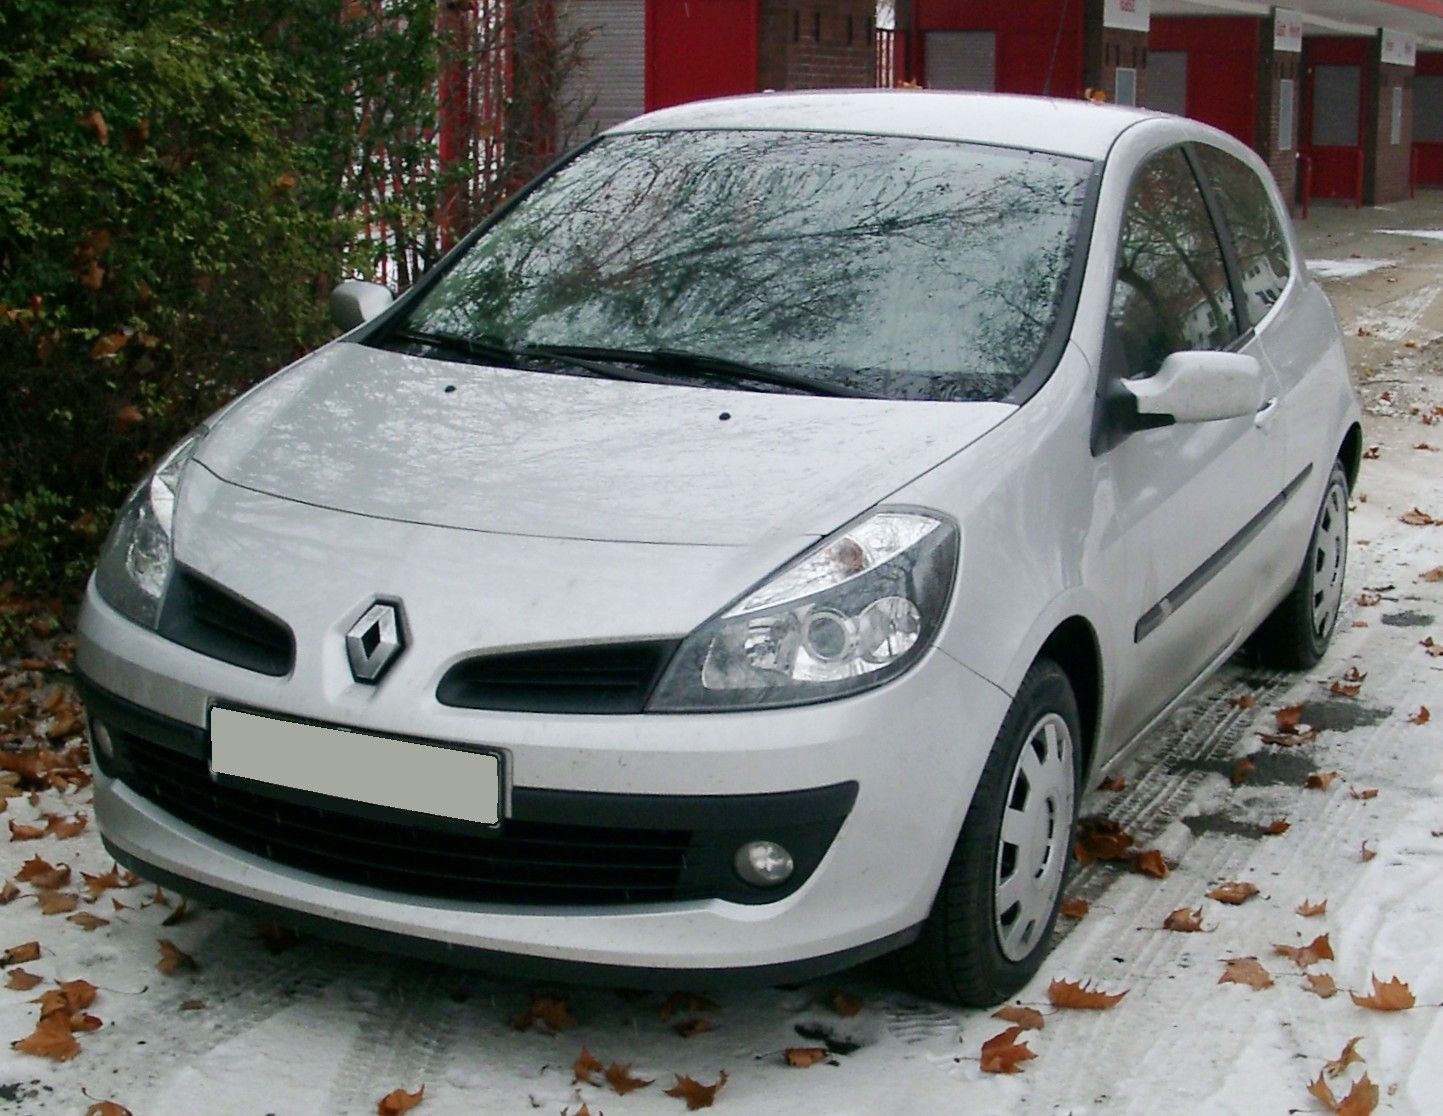 renault clio front bumper 2006 2009 new new not campus. Black Bedroom Furniture Sets. Home Design Ideas